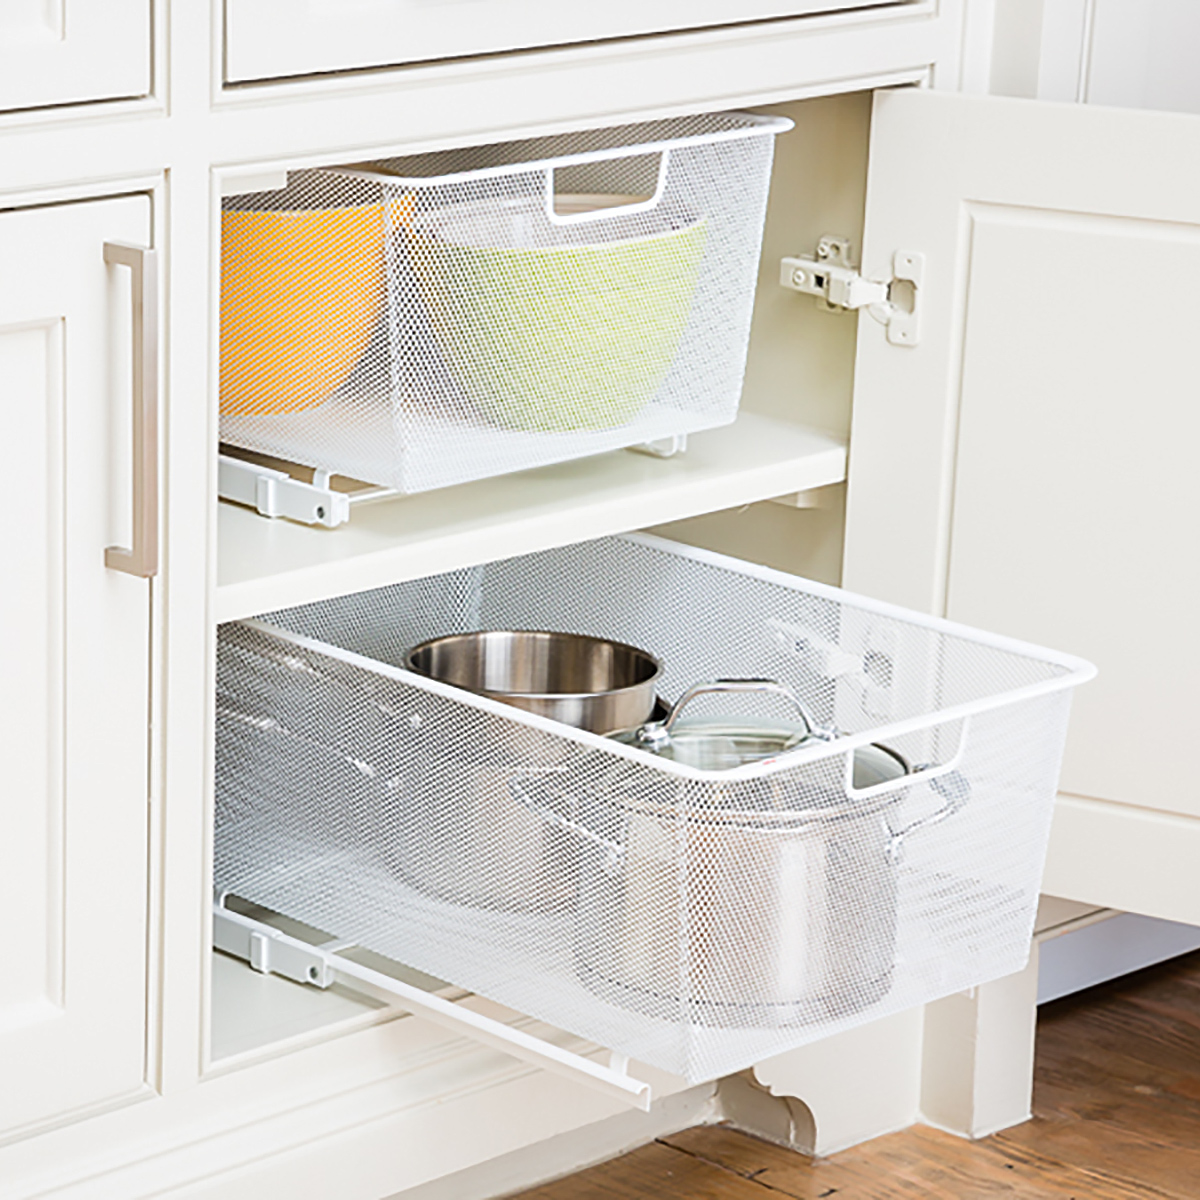 Elfa White Cabinet-Sized Mesh Pull-Out Cabinet Drawers